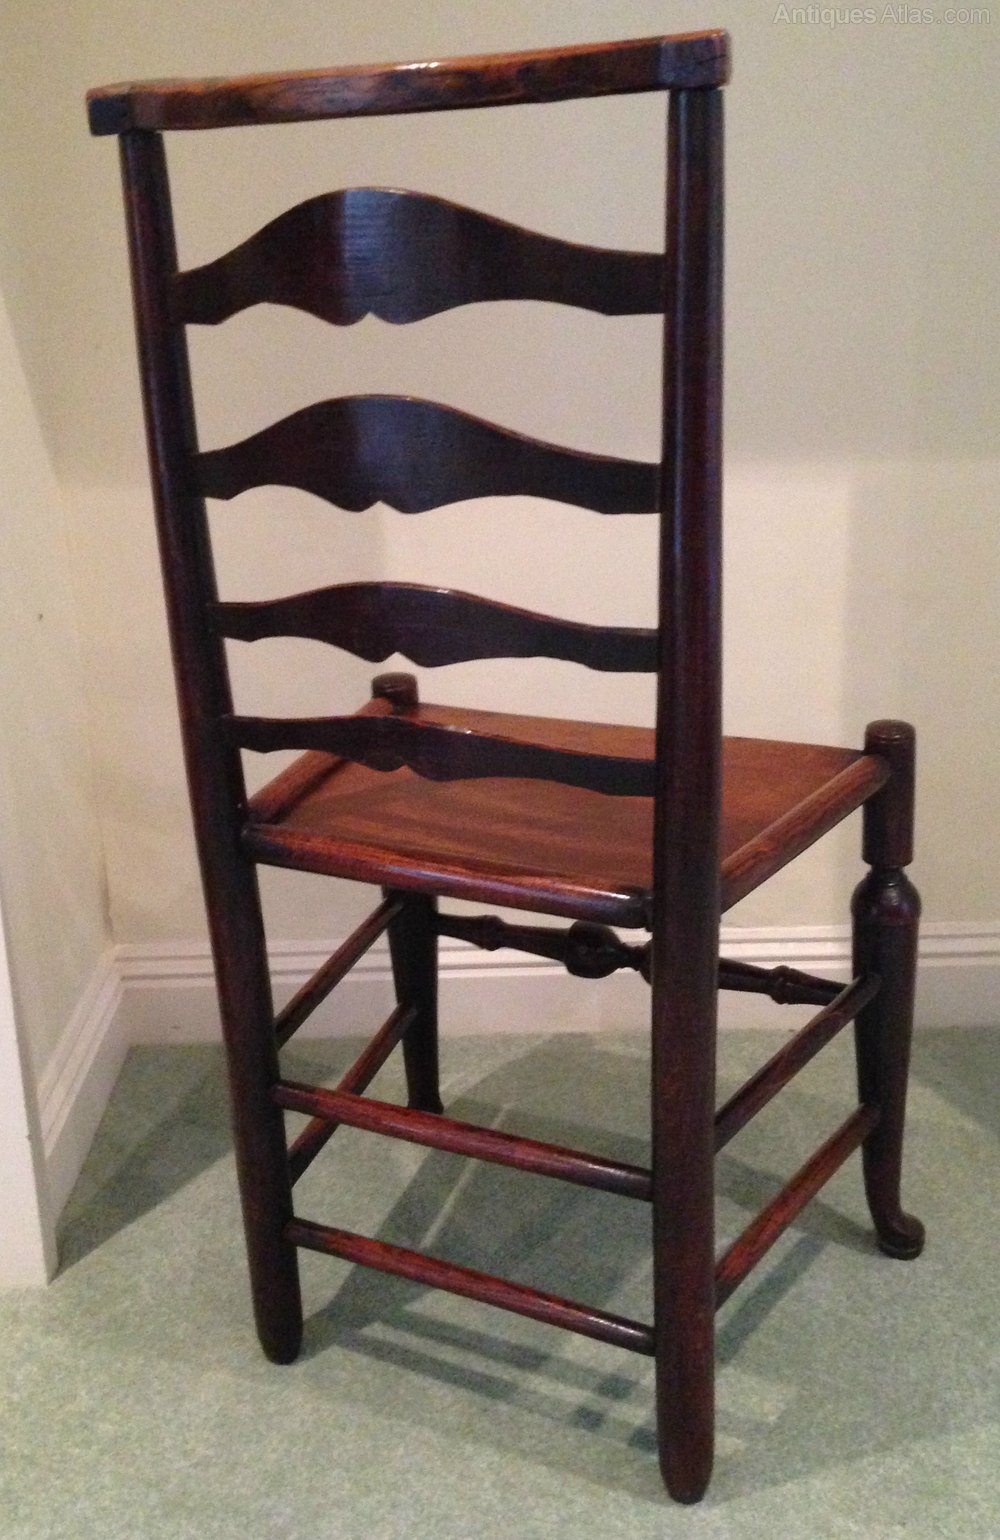 Rare 18th C Ladderback Chair  Antiques Atlas